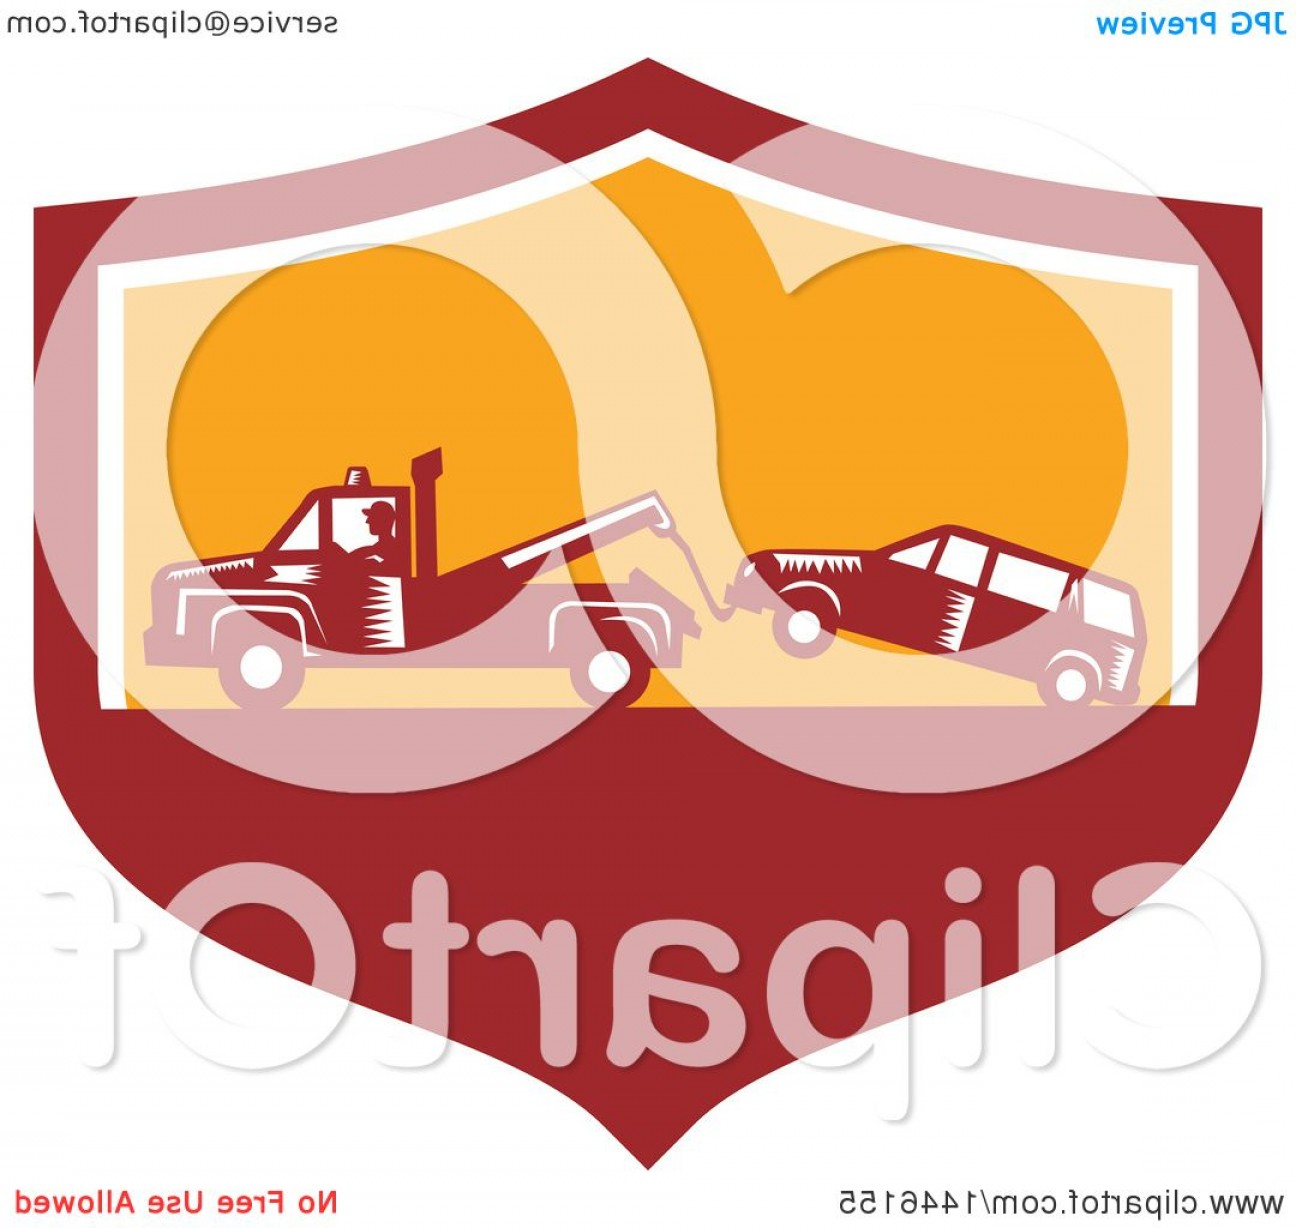 Tow Chain Vector: Retro Woodcut Tow Truck Driver Hauling A Car In A Red White And Orange Shield